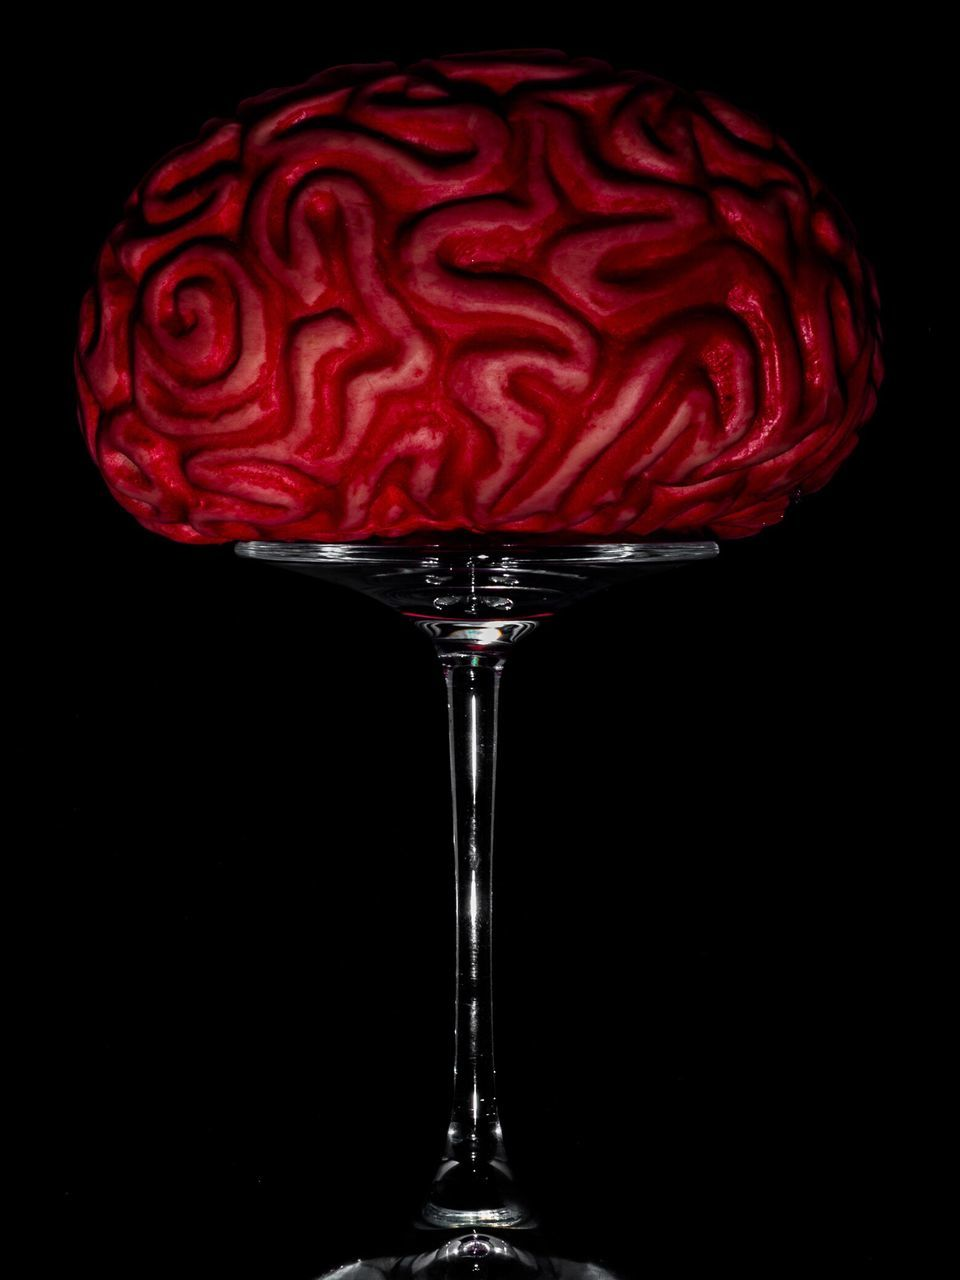 Close-Up Of Brain On Glass Against Black Background